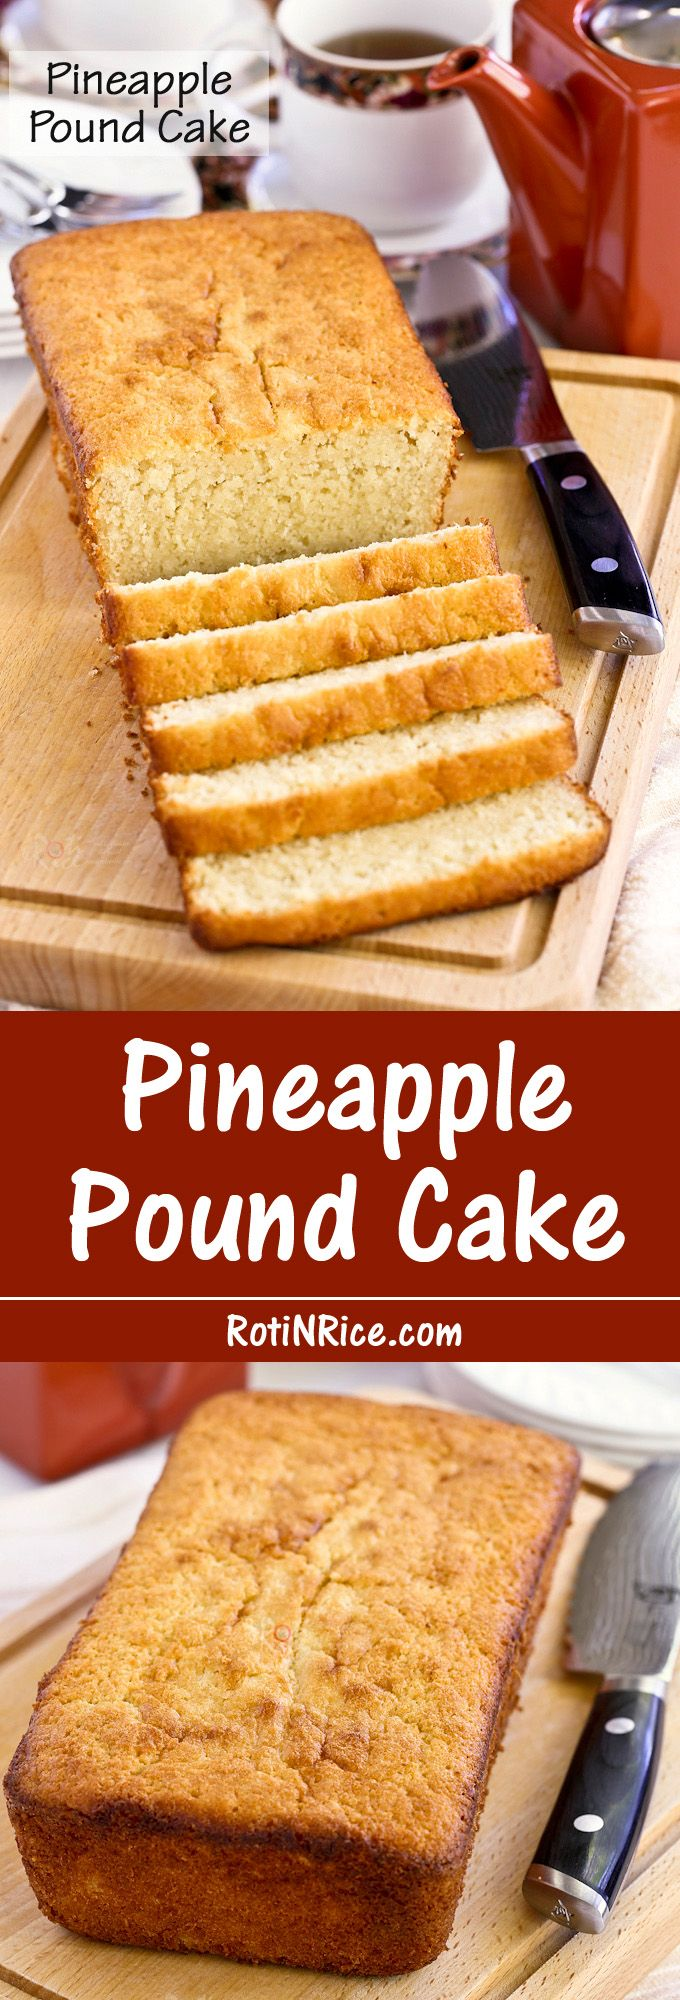 This Pineapple Pound Cake is made with pineapple puree for a finer and smoother textured pineapple cake. It is deliciously moist and tender. | Food to gladden the heart at RotiNRice.com